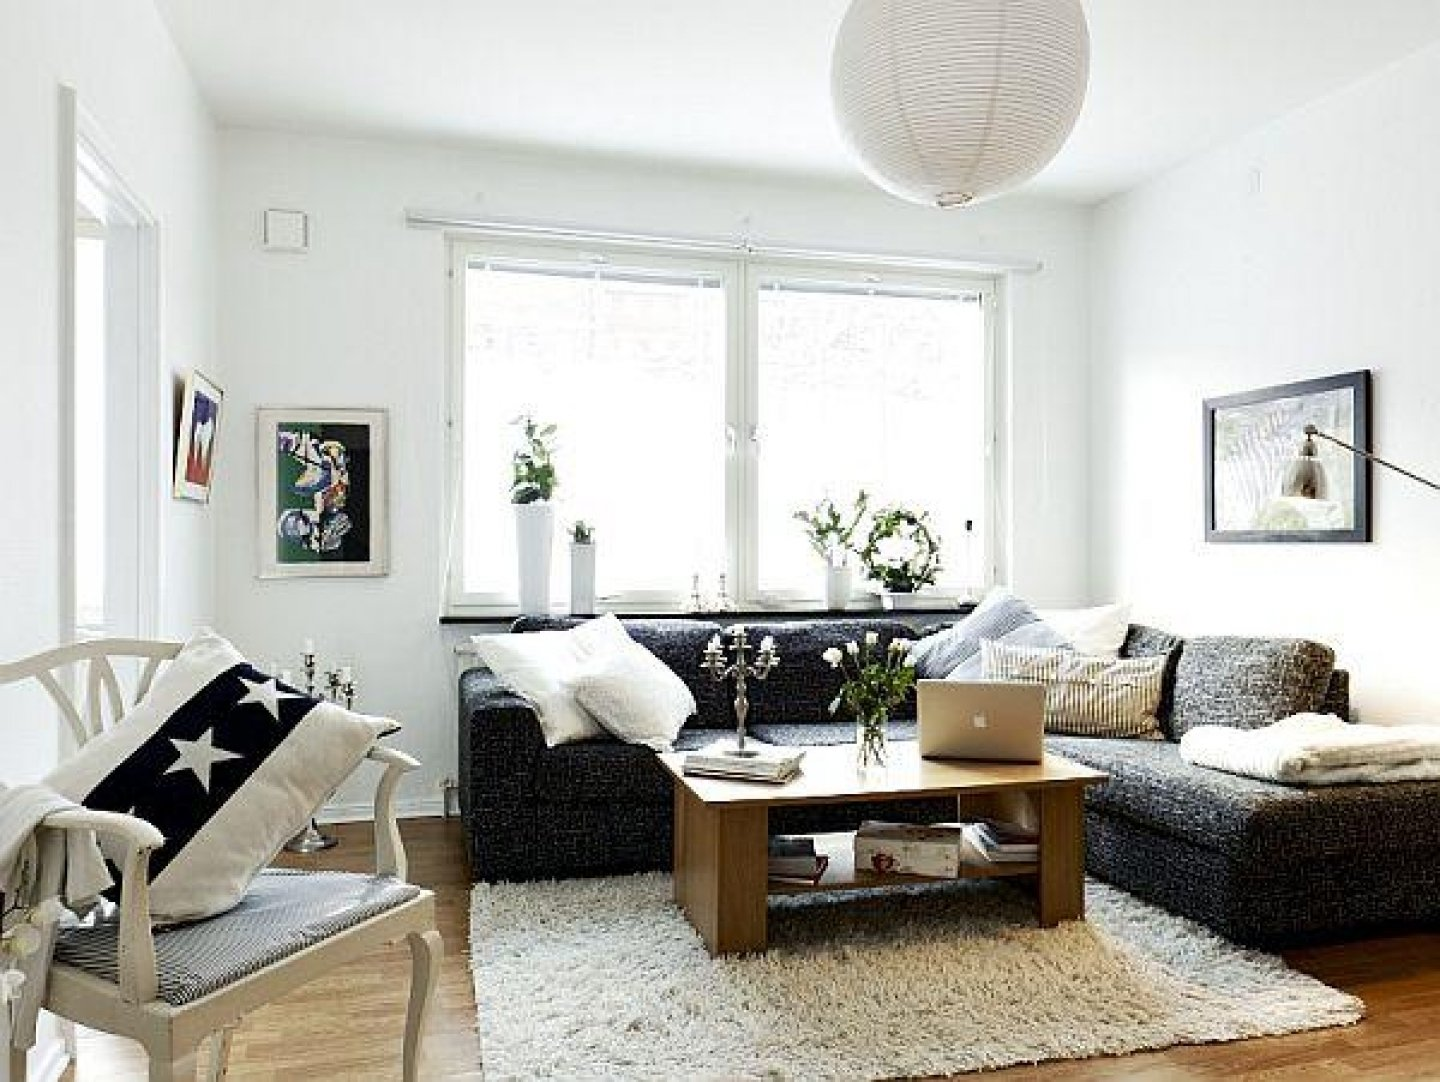 10 Ideal Living Room Ideas For Apartments great apartment living room decor ideas for apartment living room